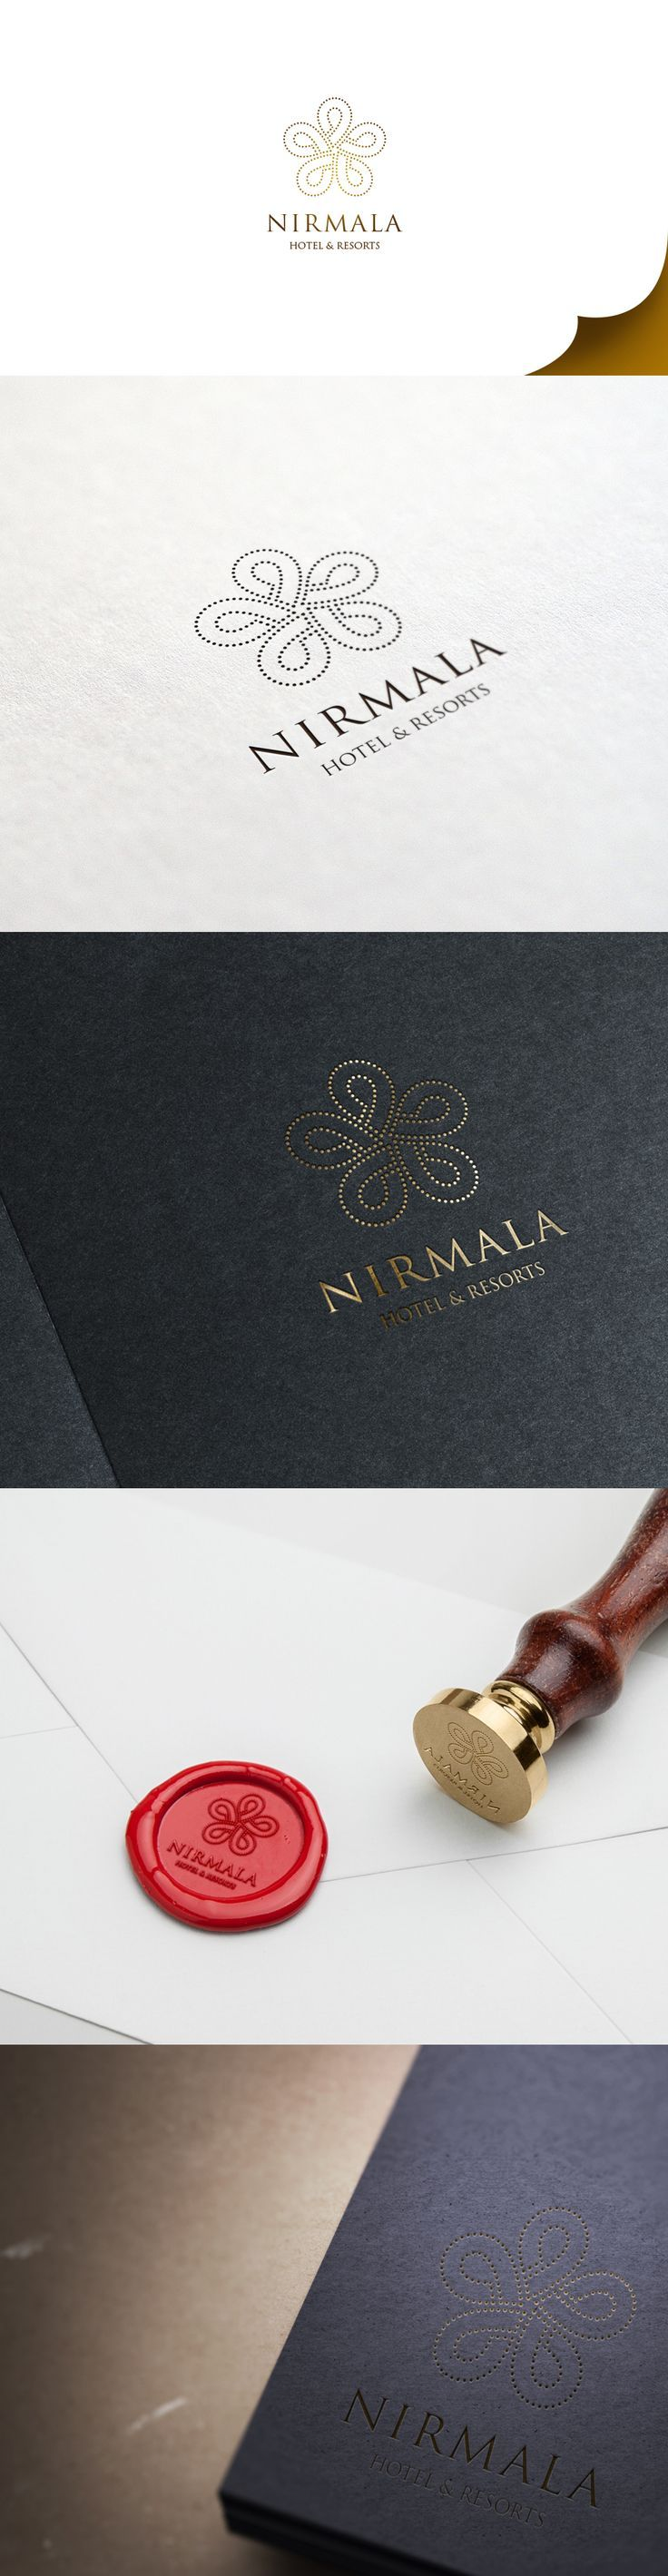 """Nirmala Hotel & Resorts"". Kind of a traditional looking logo design which we have used a floral looking theme & mostly dark brown colors."